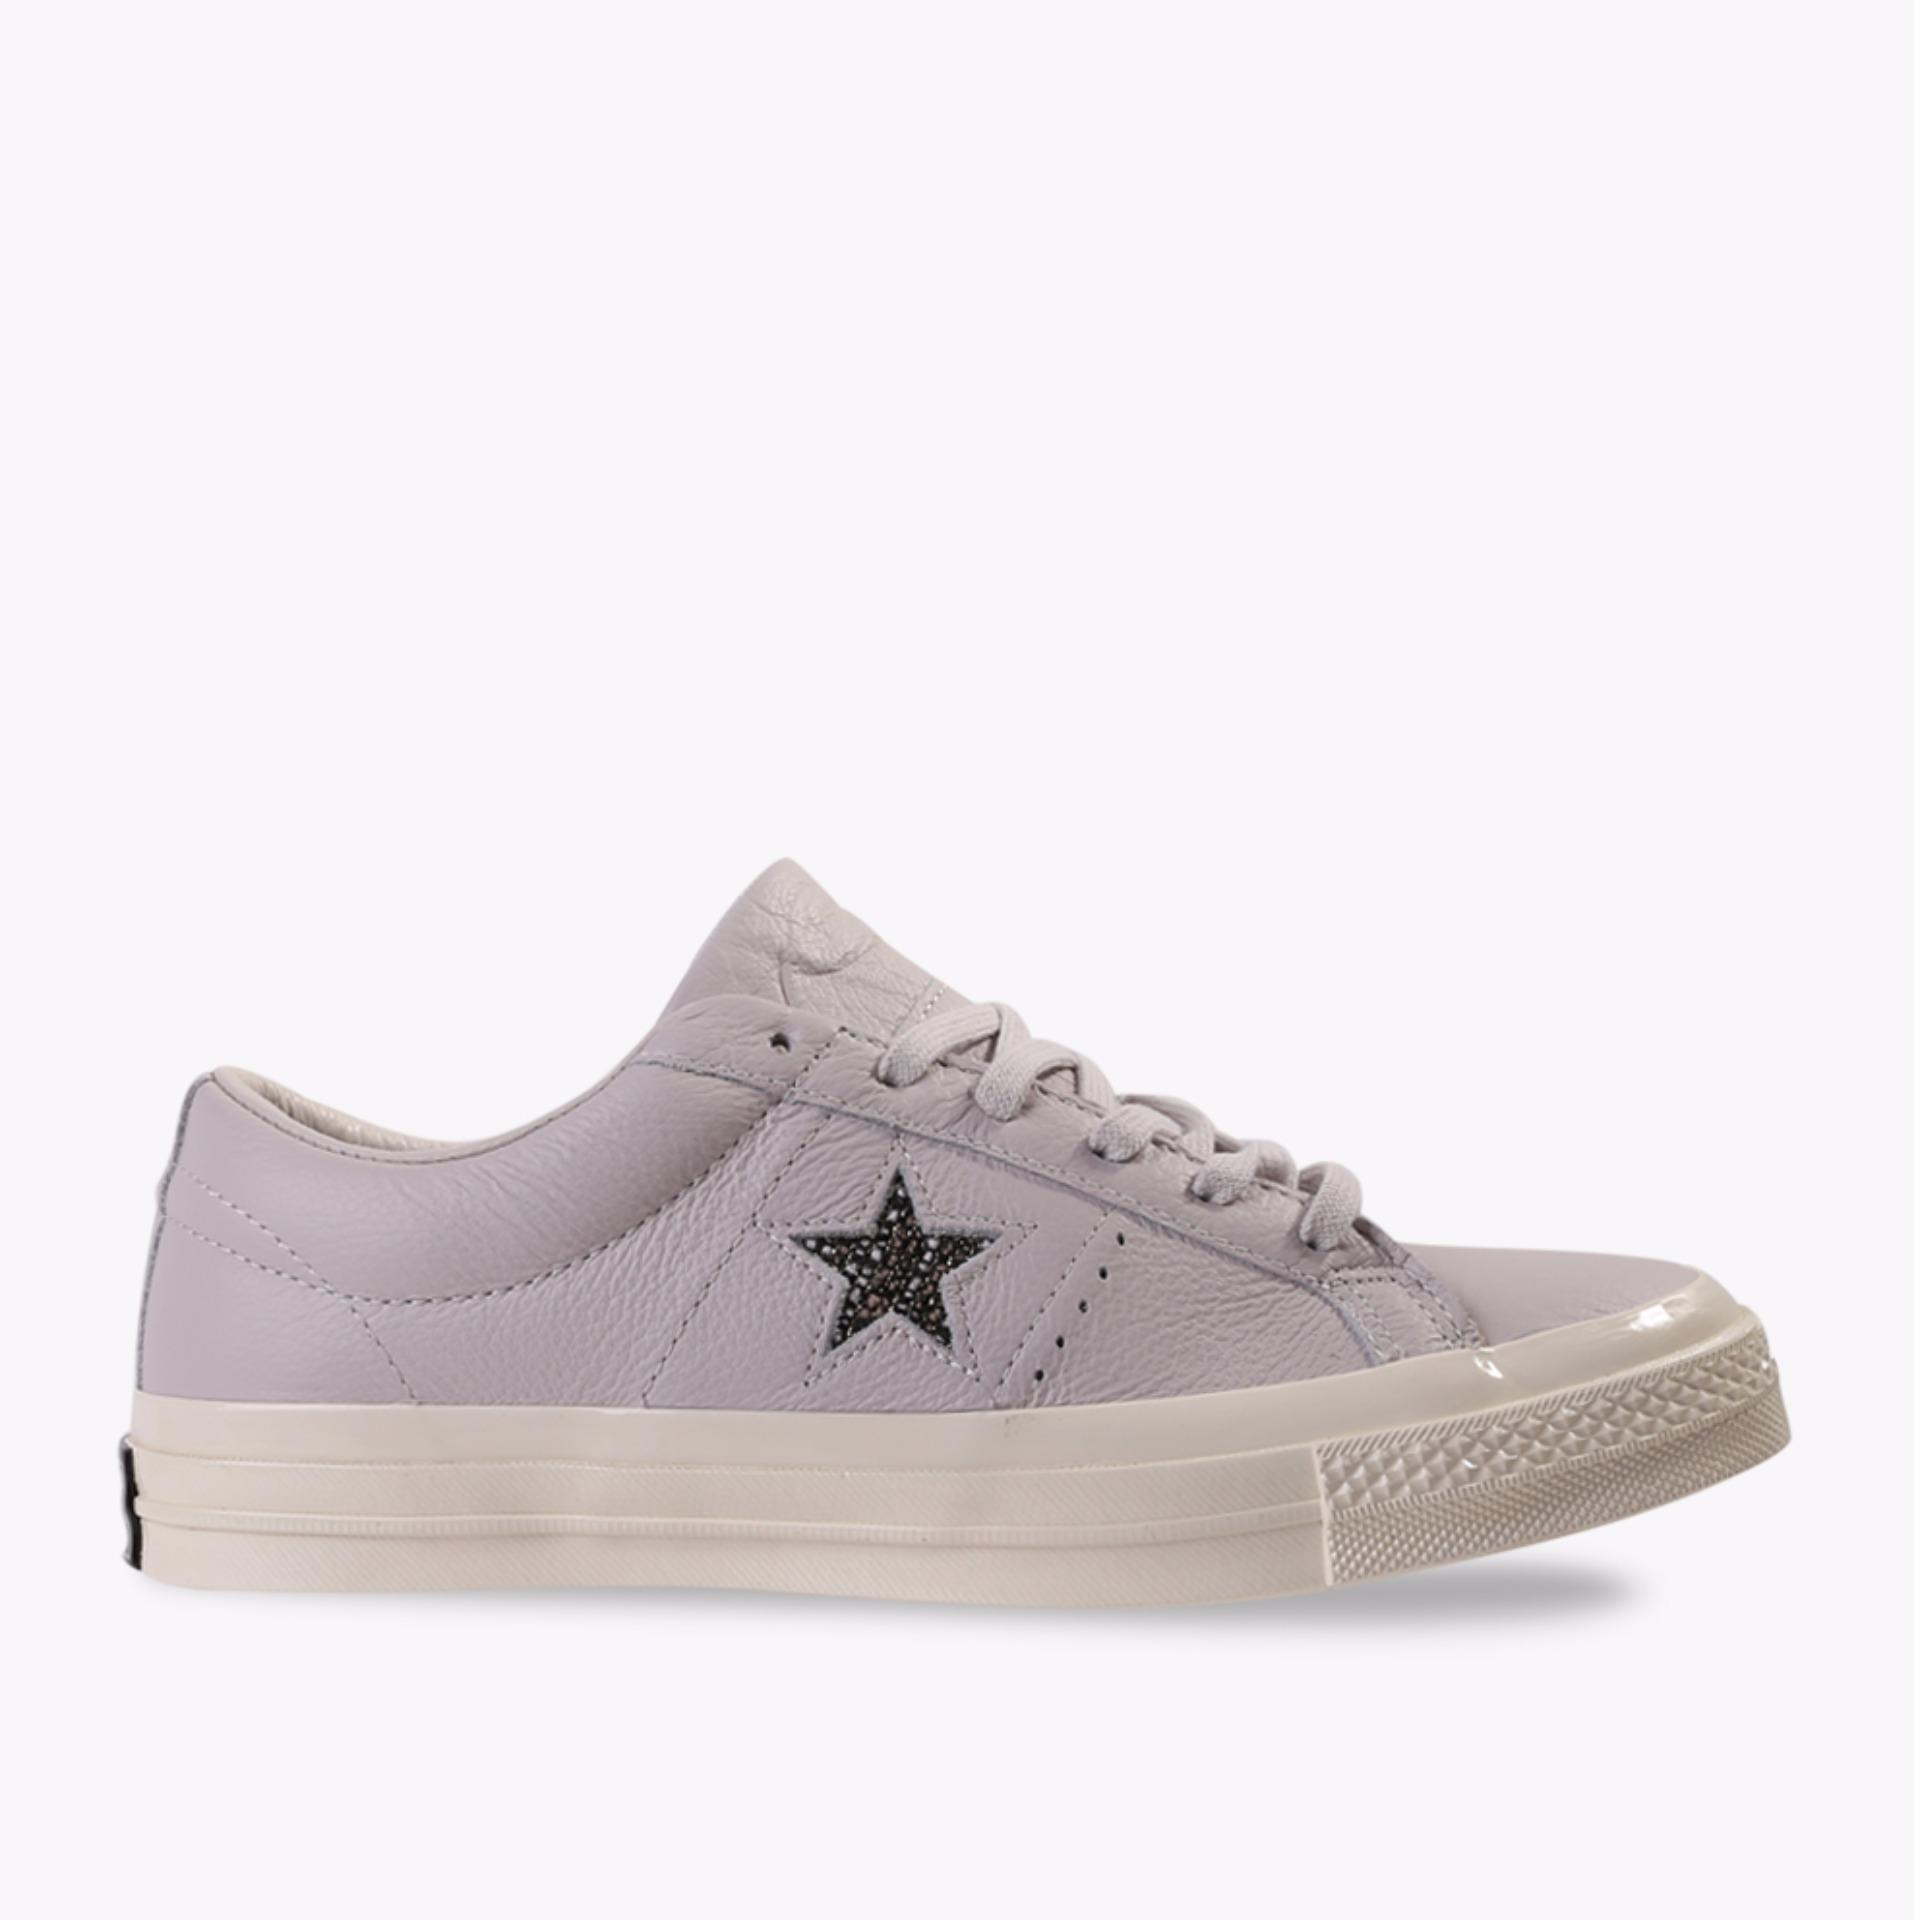 Converse One Star Leather Ox Women's Sneakers Shoes - Unisex Chuck Size - Ungu